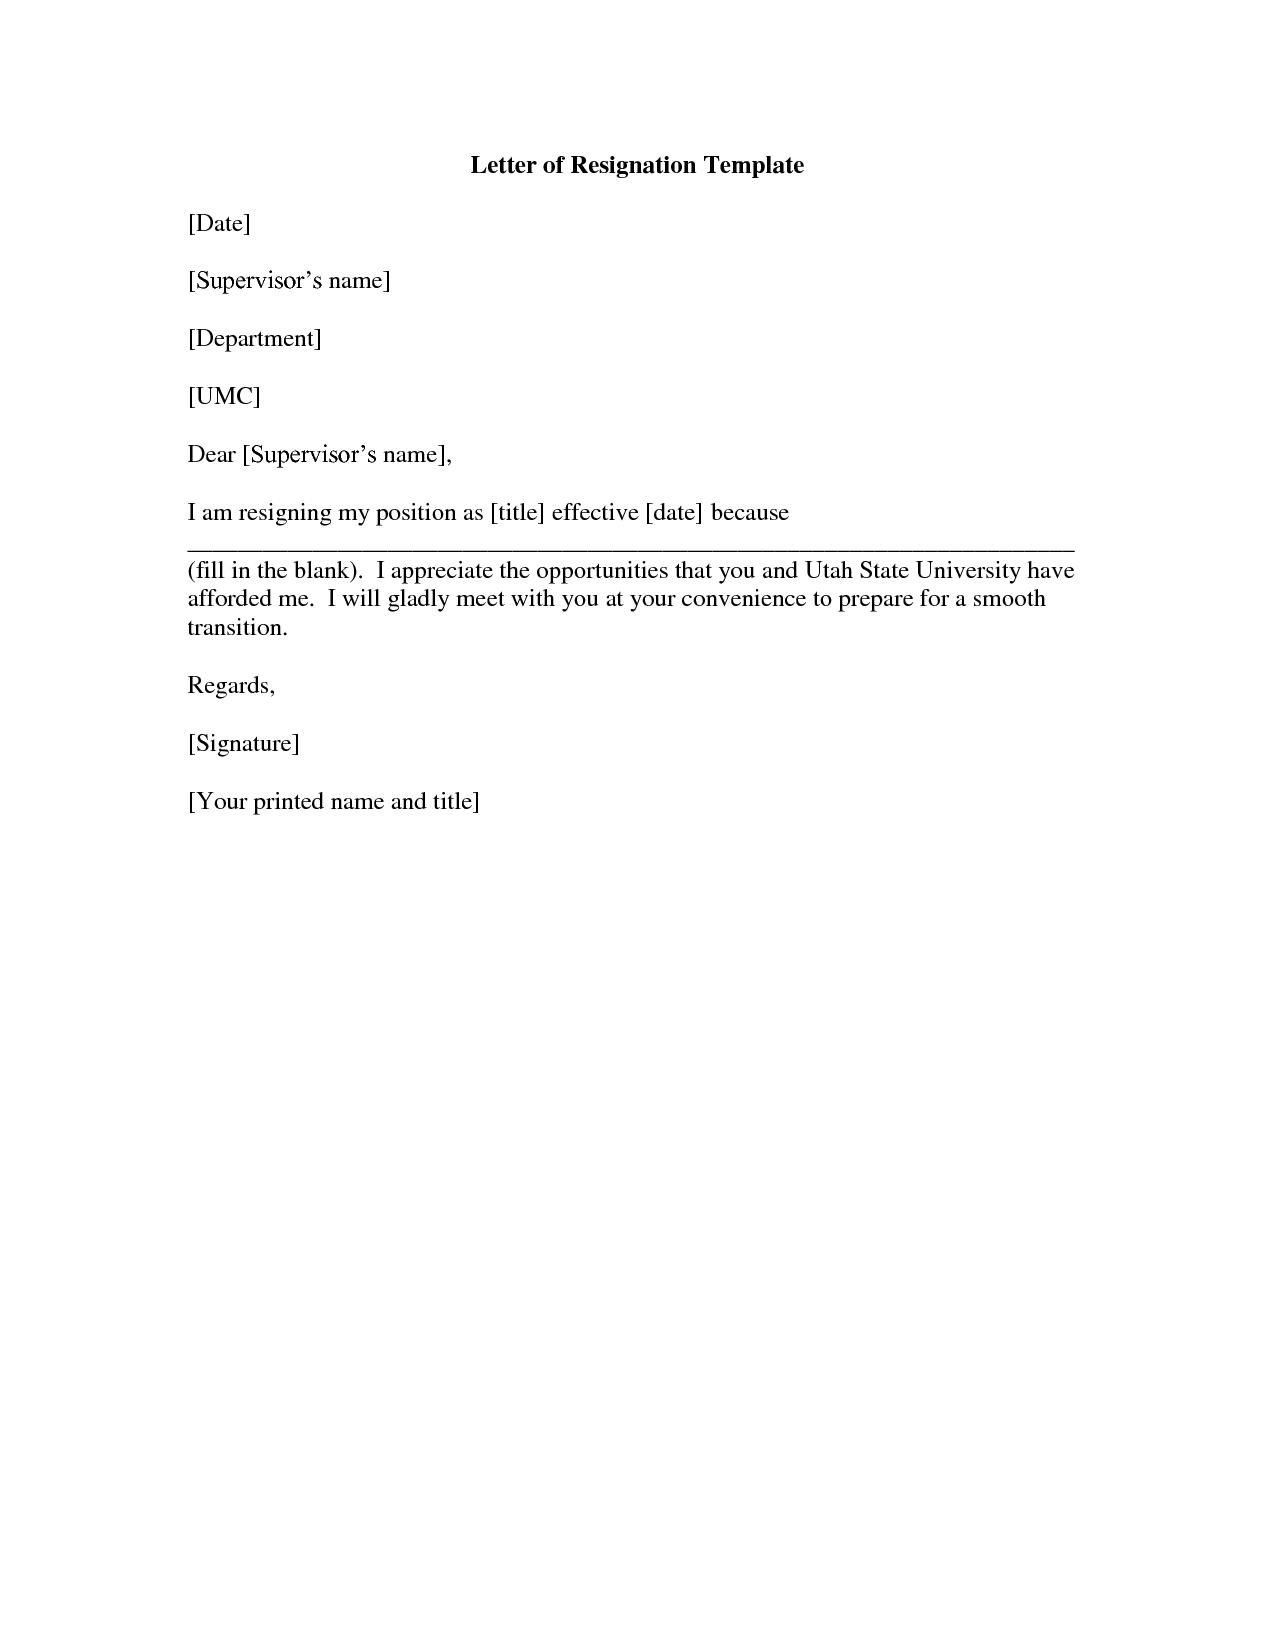 letter of resignation template target printable letter of resignation form generic 5emdqgo1